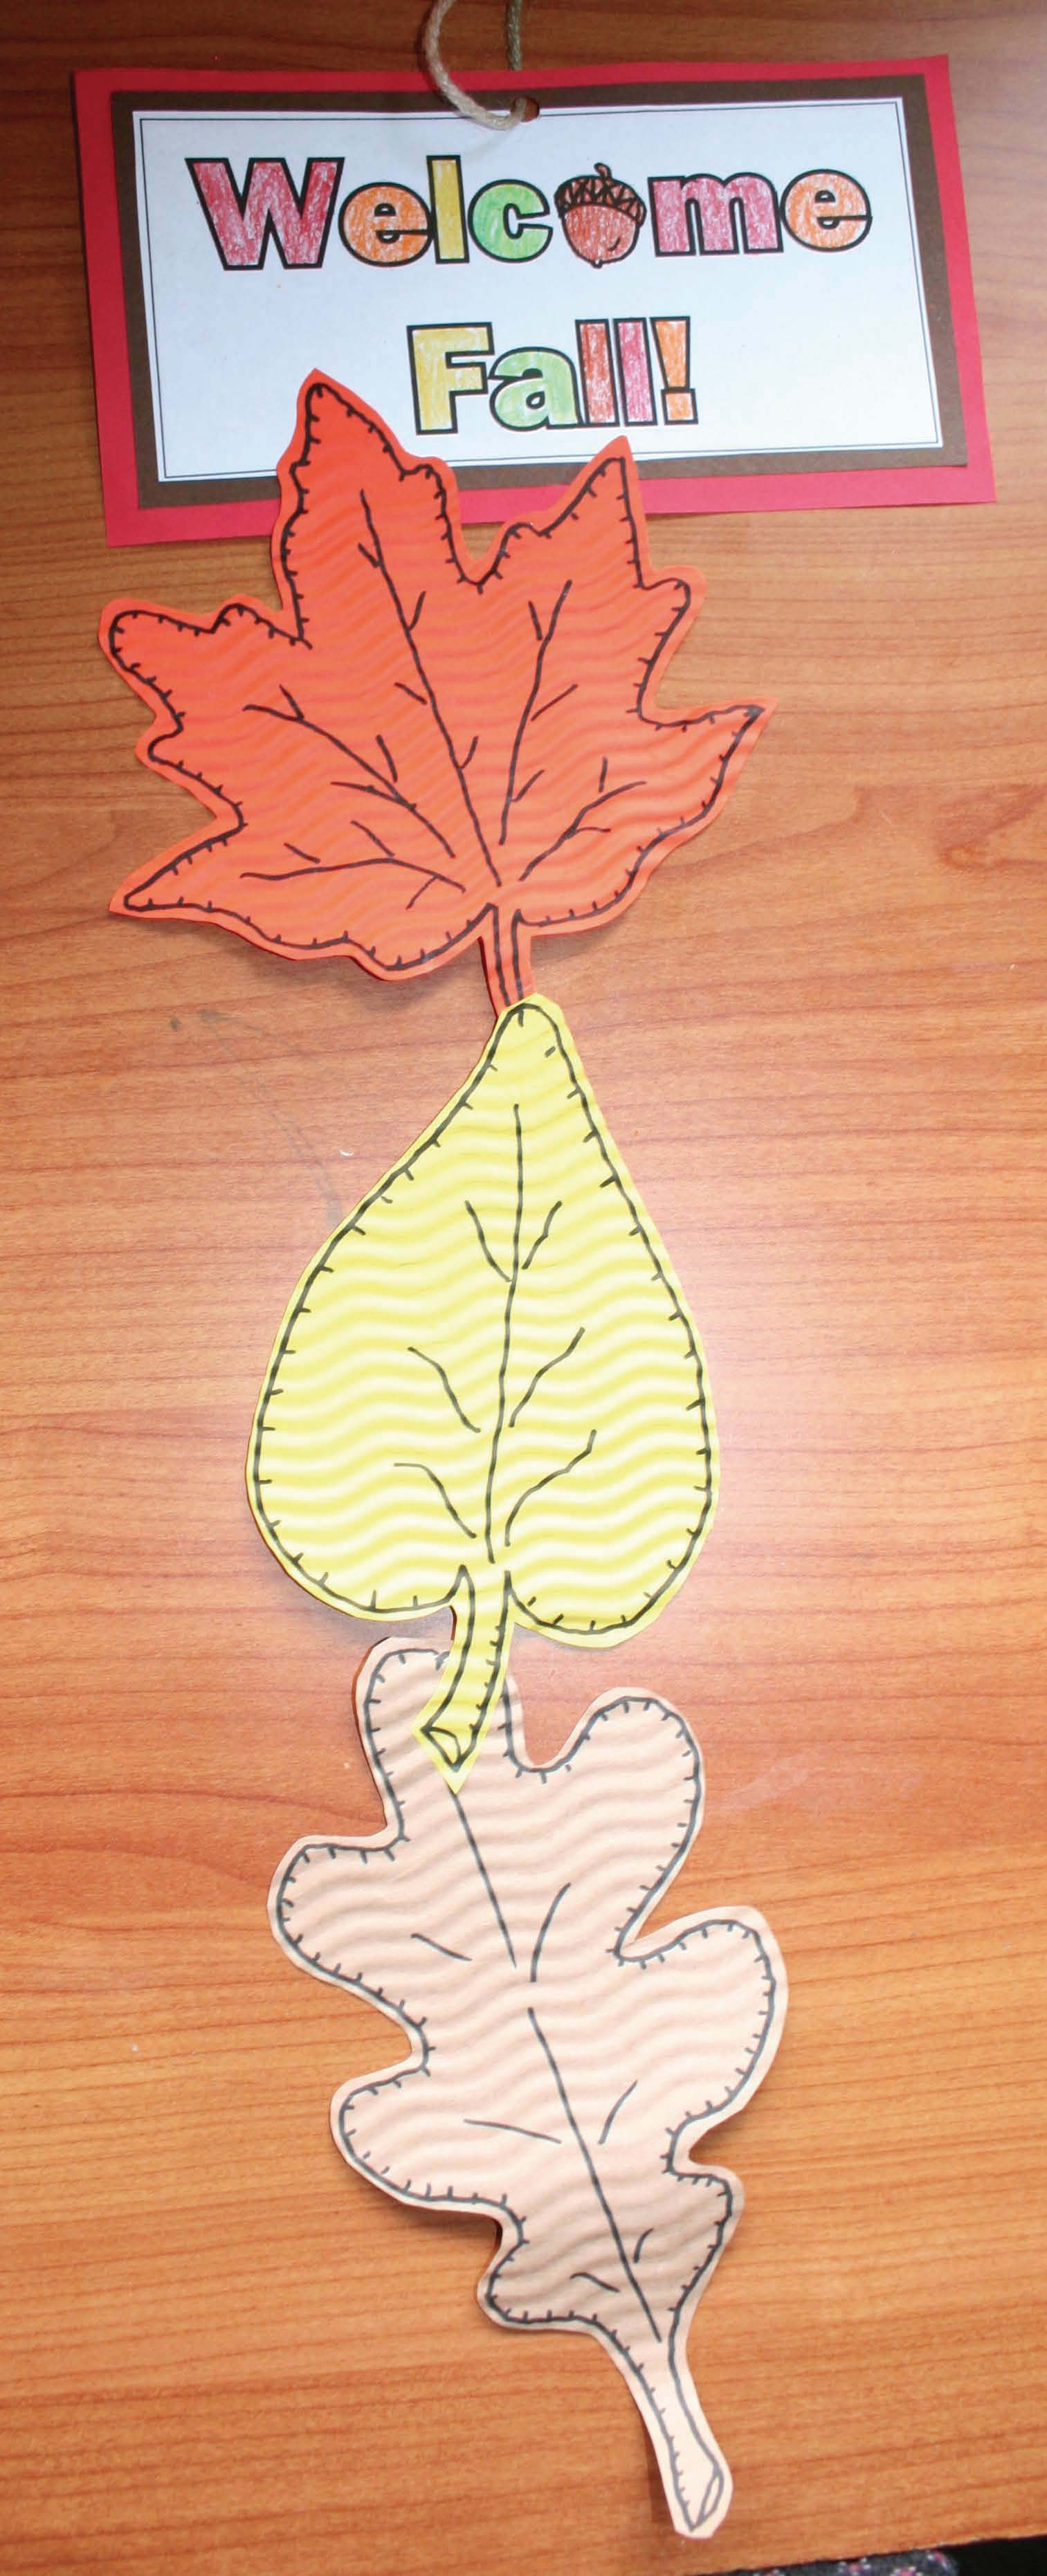 leaf activities, leaf crafts, common core leaves, fall writing prompts, fall crafts for kids, ordinal number activities, leaf alphabet cards, fall alphabet games, fall writing prompts, fall centers, leaf graphing, shape activities, alphabet games, leaf science, fall math games, fall math activities, graphing activities, 2D shape activities